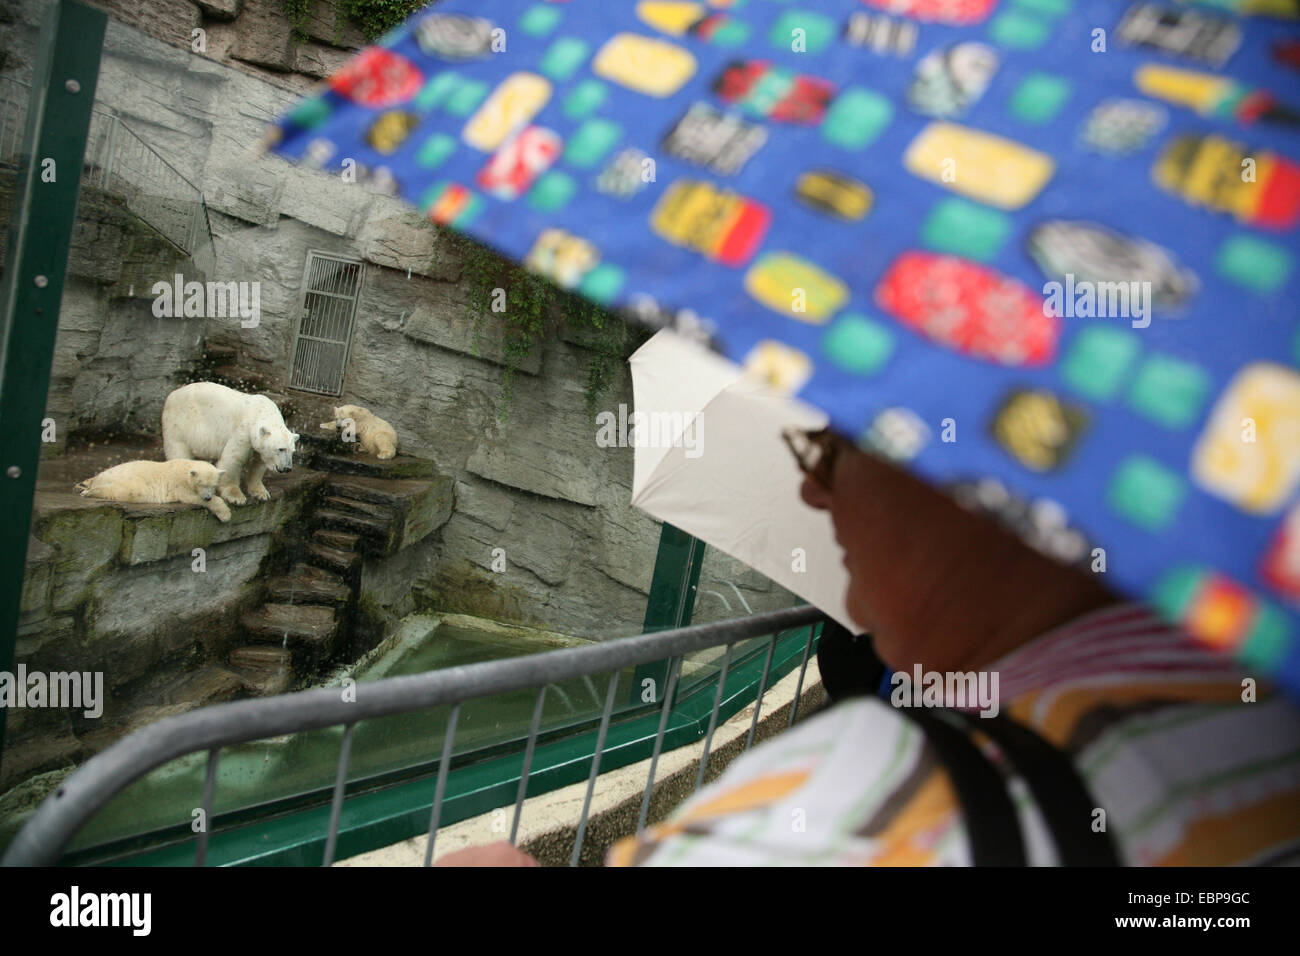 Visitors under umbrellas looks at a polar bear (Ursus maritimus) with two cubs at Schonbrunn Zoo in Vienna, Austria. Stock Photo